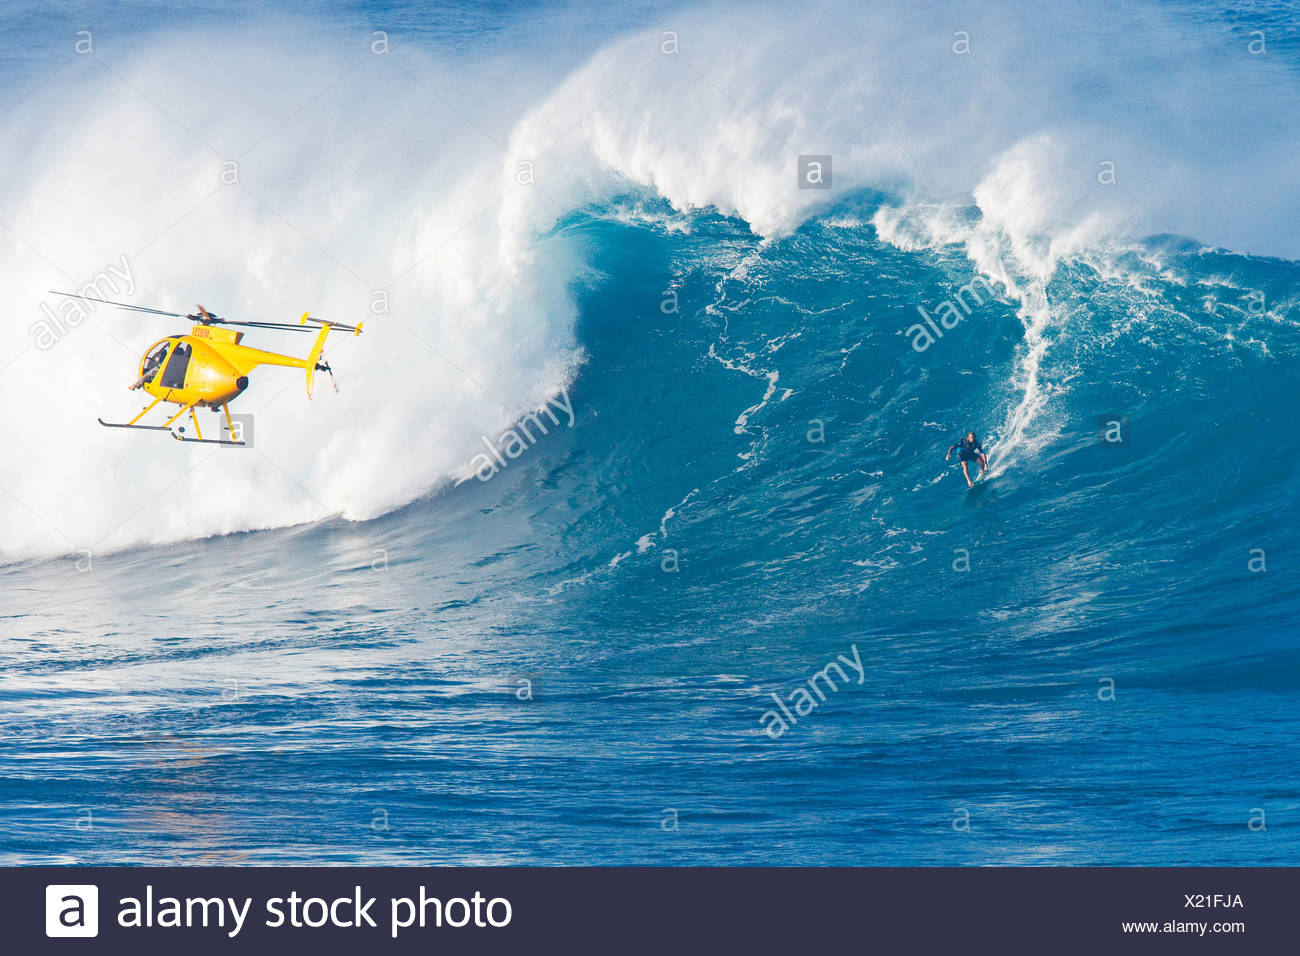 Hawaii Maui Peahi Jaws Helicopter Surfer Rides A Giant